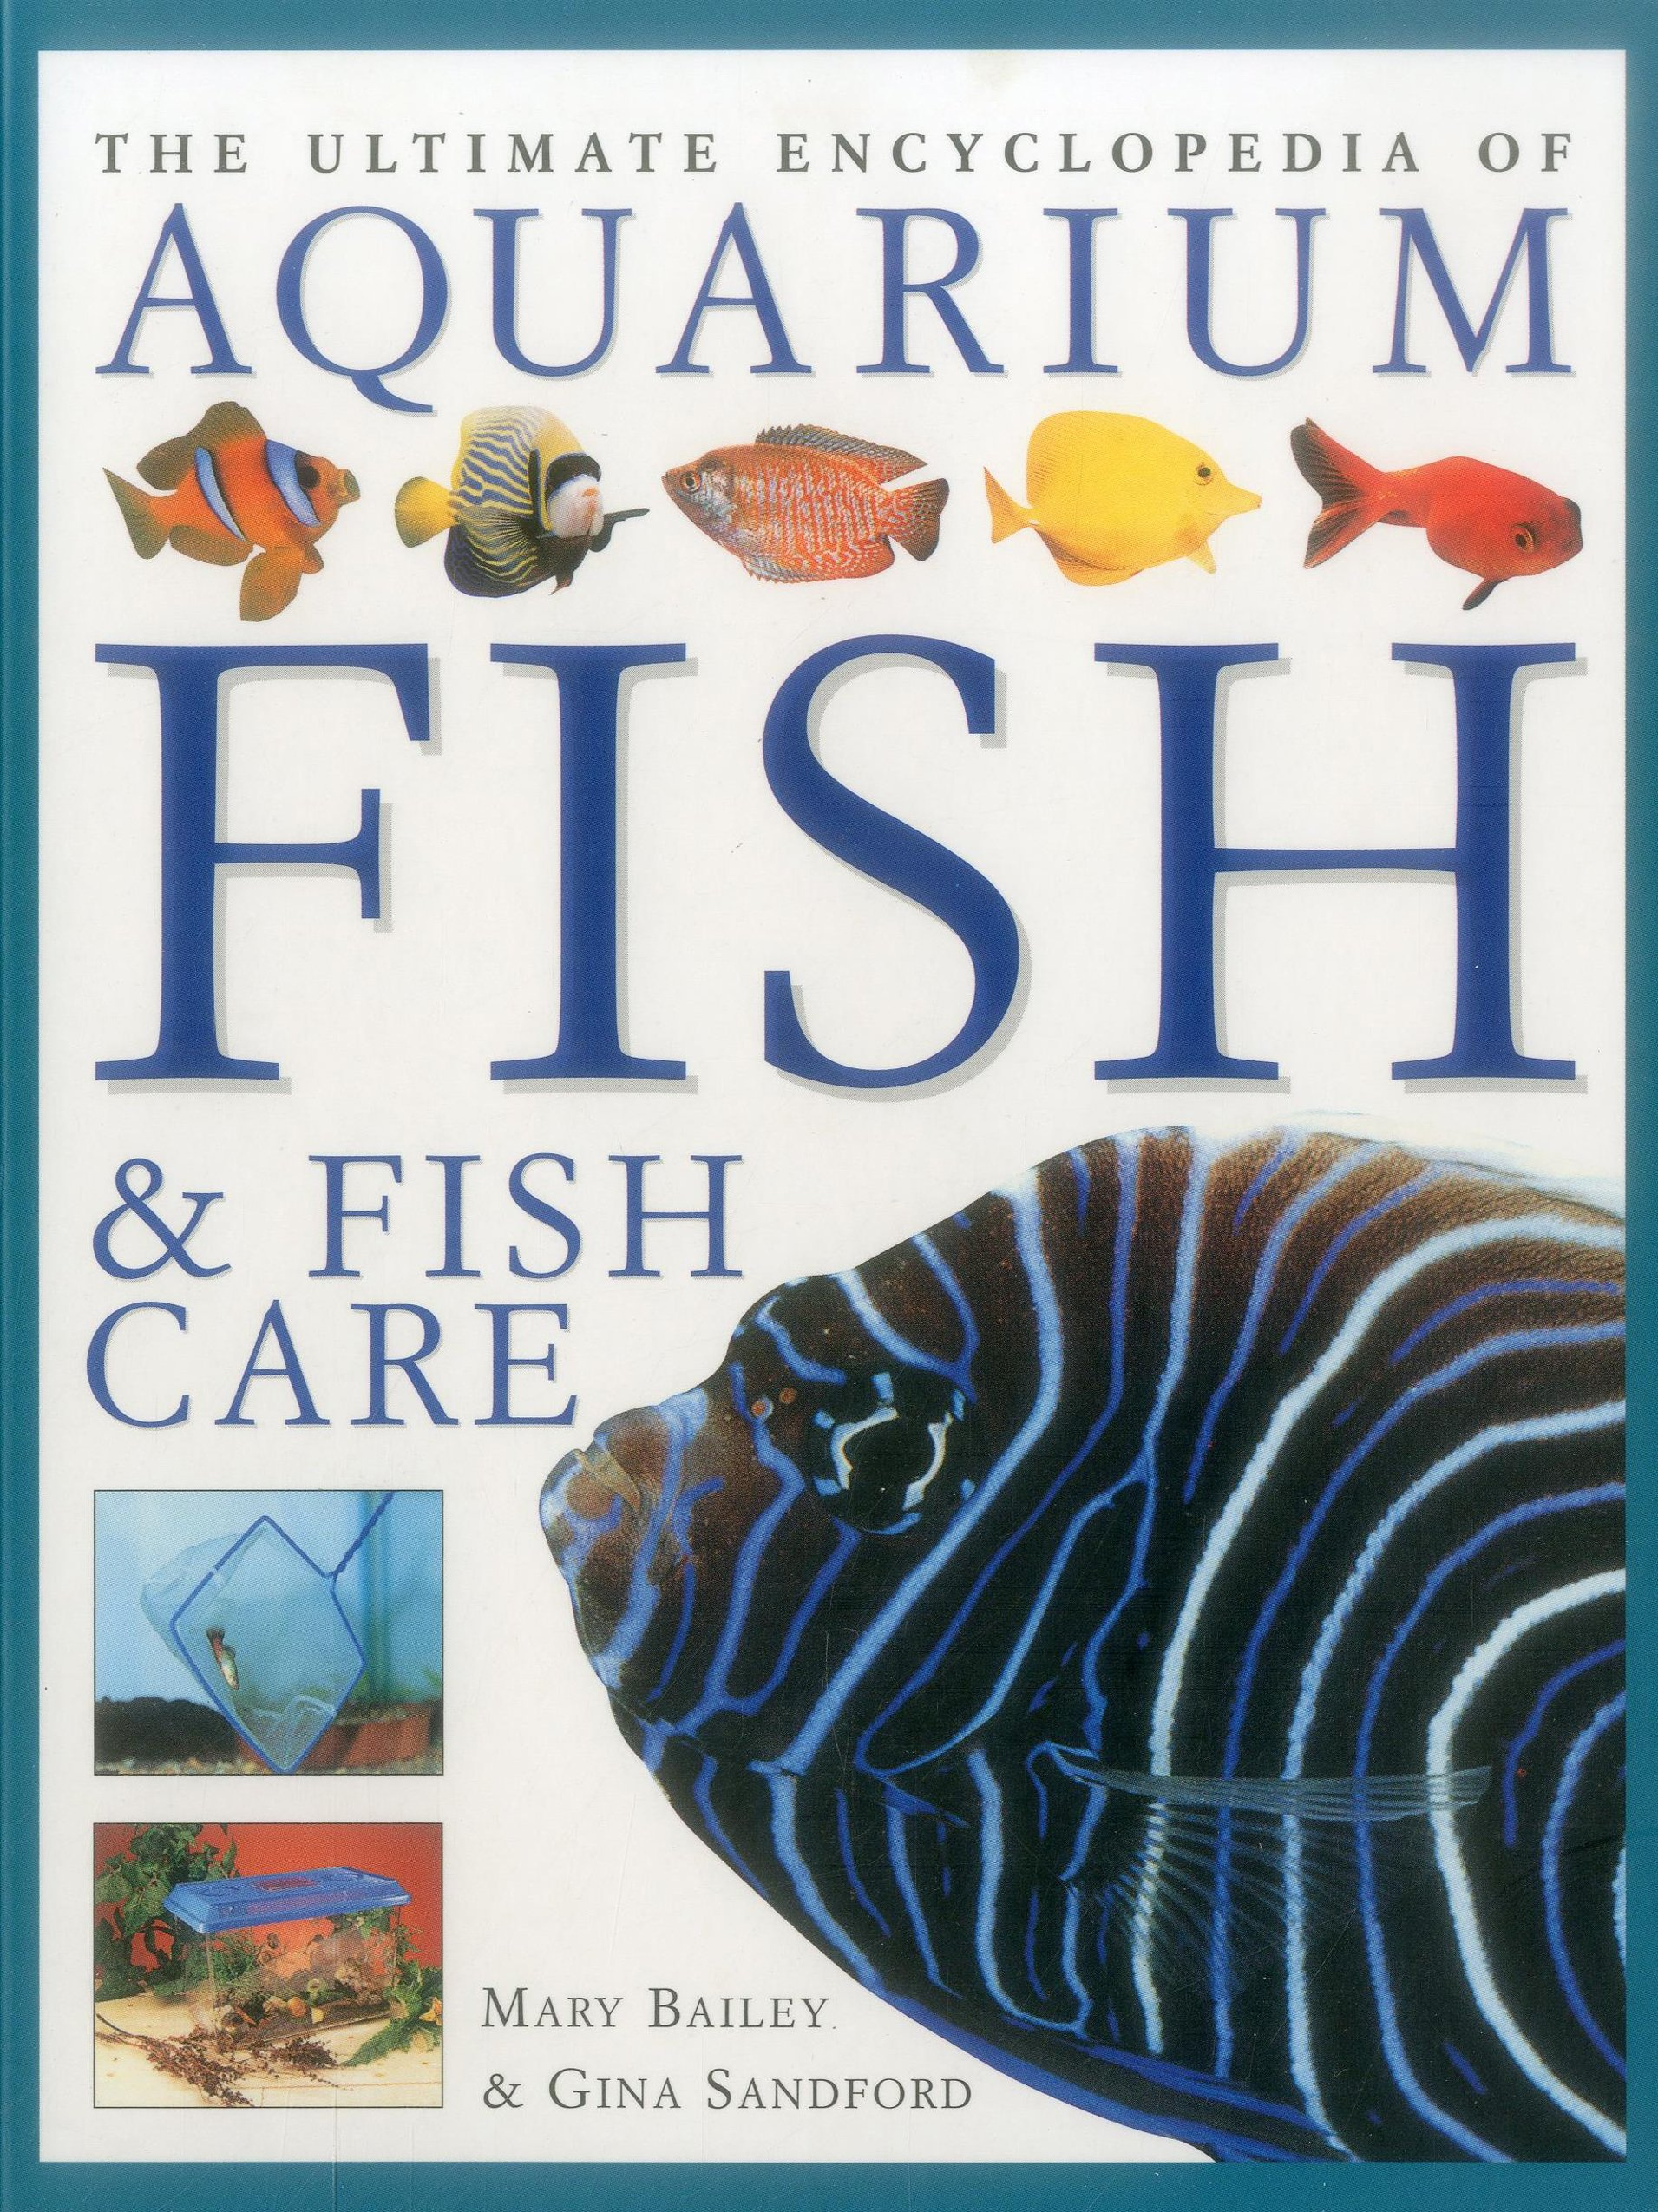 Freshwater aquarium fish guide - The Ultimate Encyclopedia Of Aquarium Fish Fish Care A Definitive Guide To Identifying And Keeping Freshwater And Marine Fishes Mary Bailey